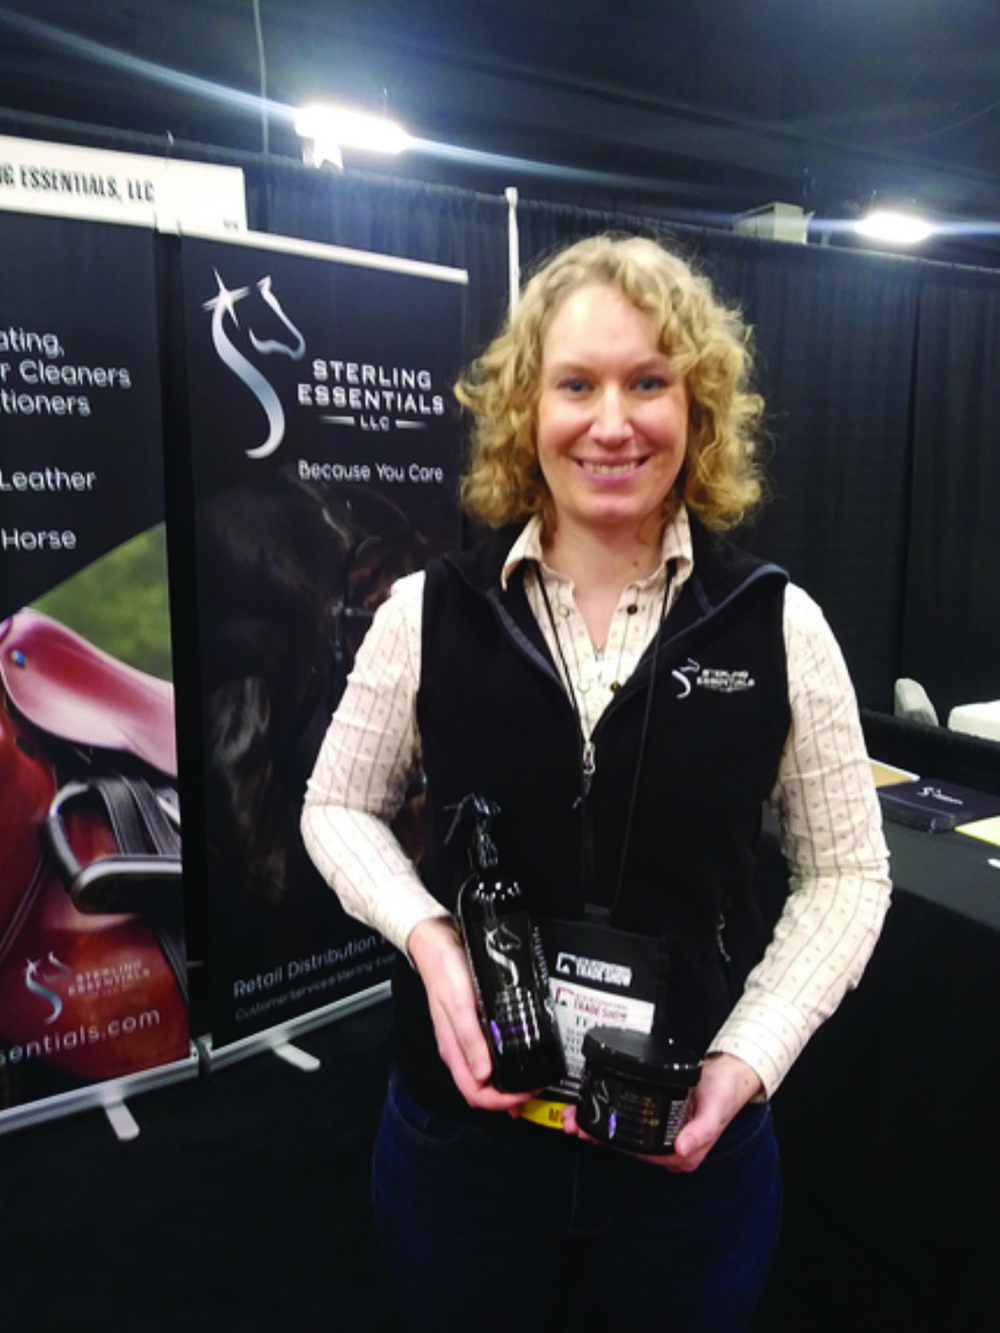 Sterling Essentials' CEO Teal Shoop, Photo Credit EIE